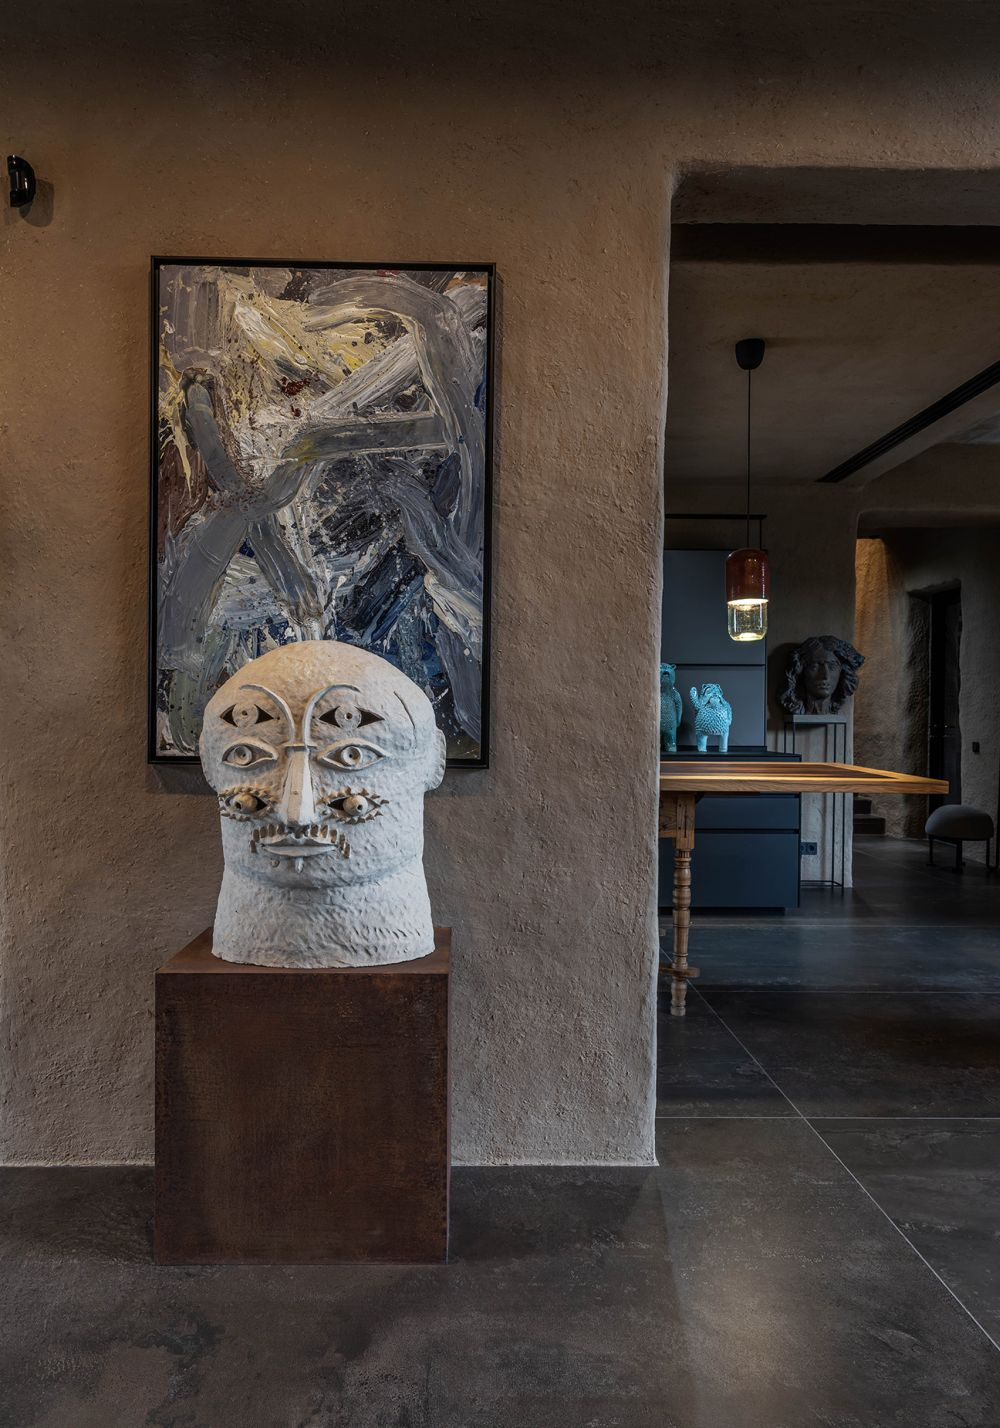 Lots of sculptures and paintings by local artists are displayed throughout the house